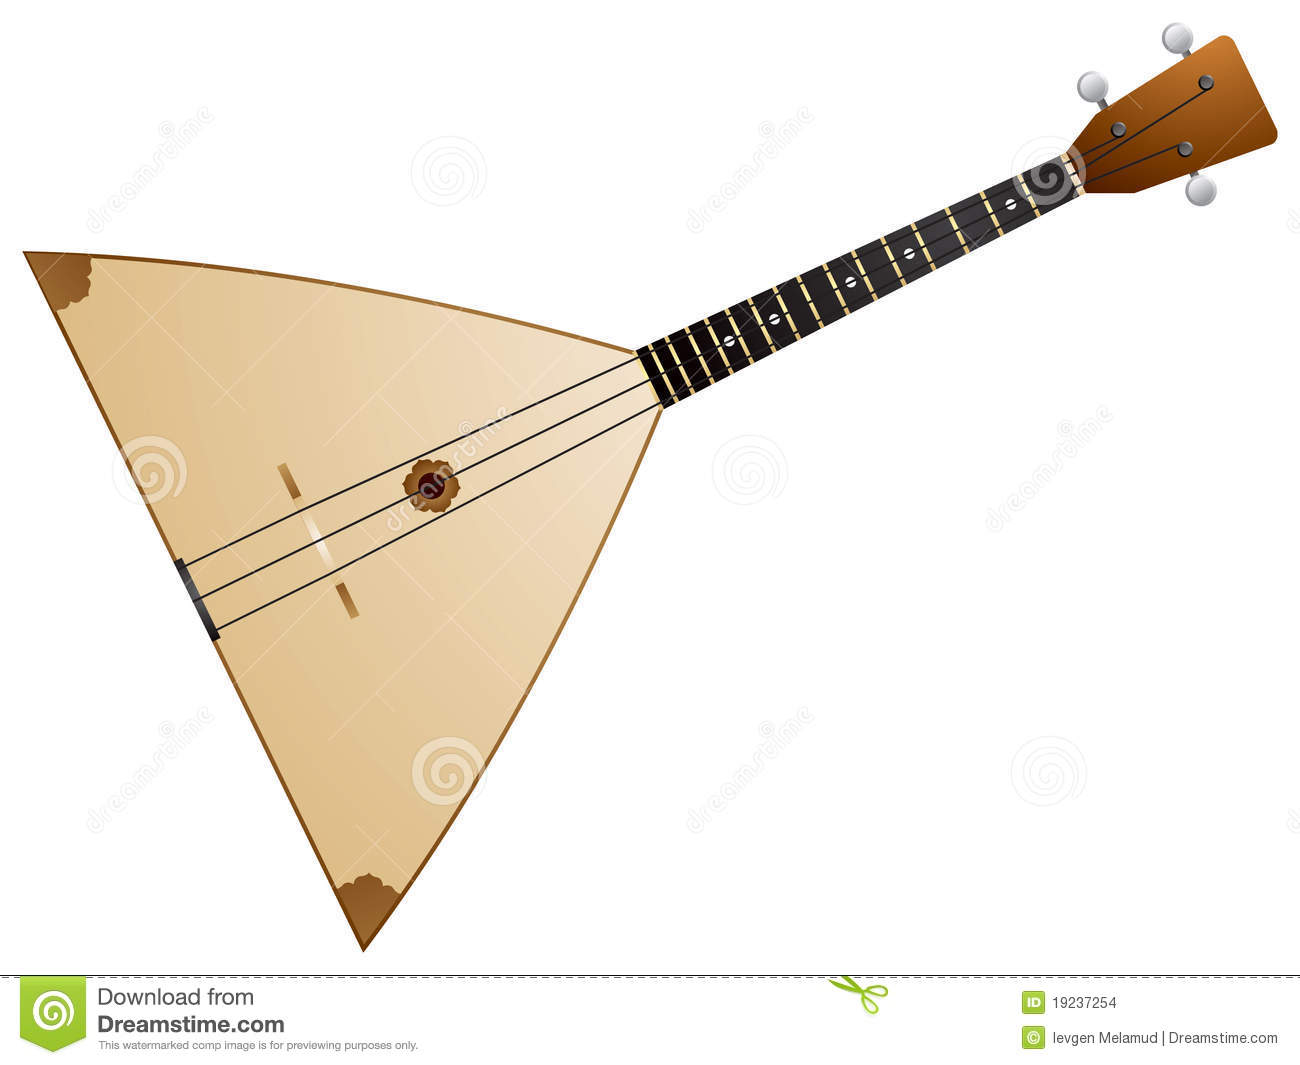 Balalaika is a Russian traditional stringed musical instrument, with a ...